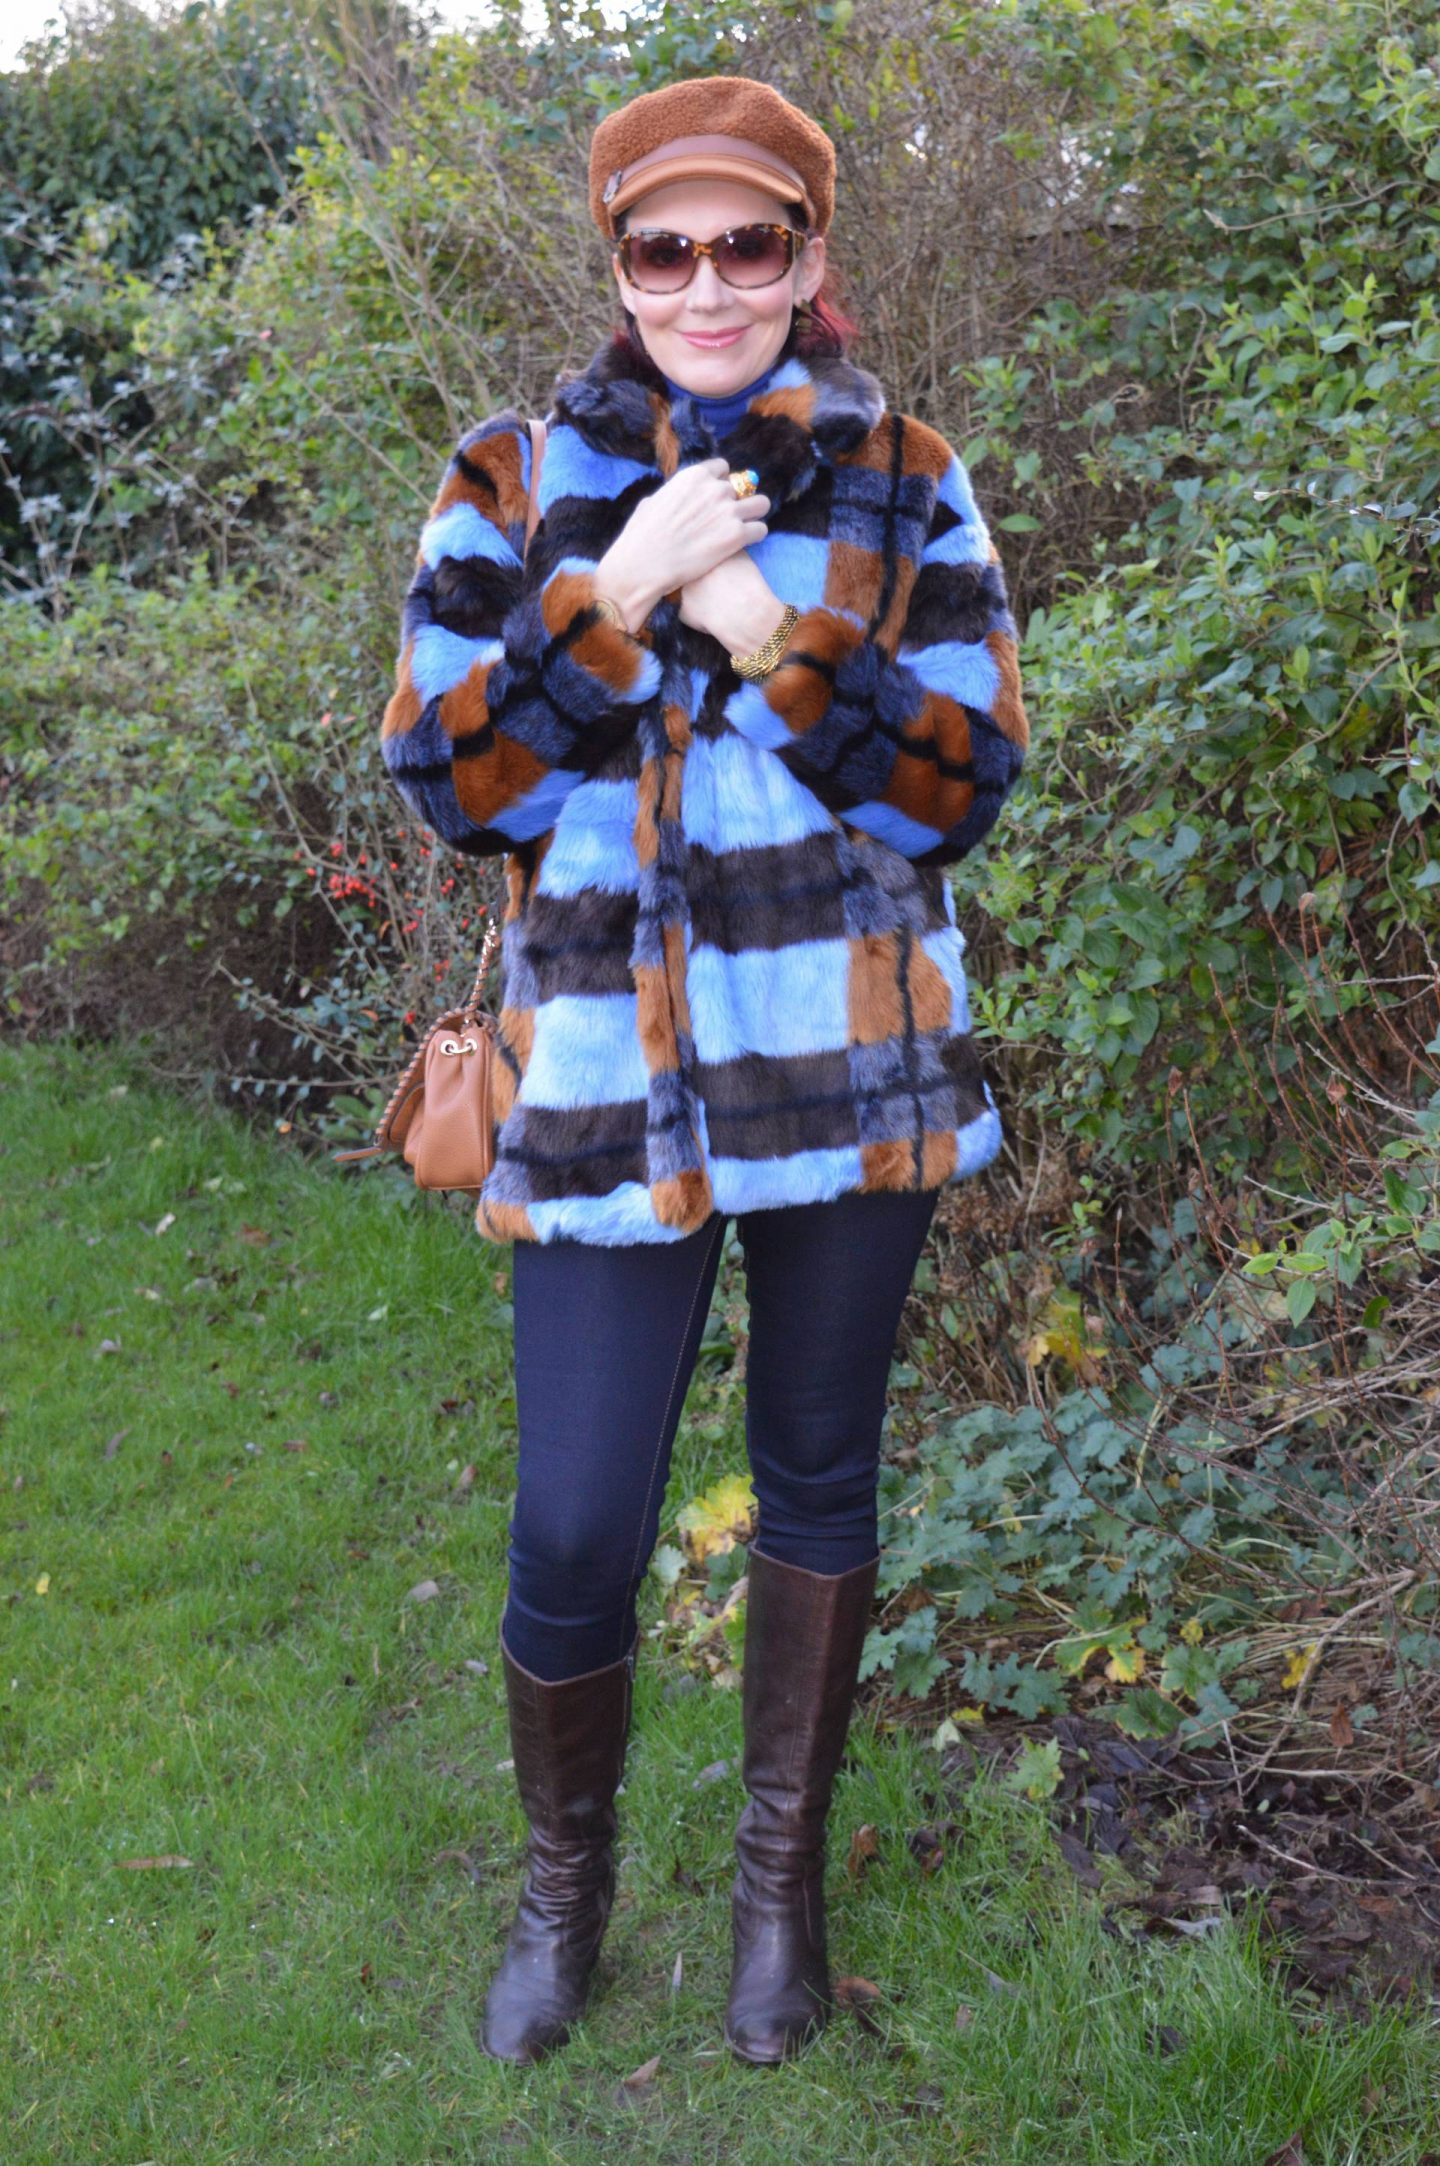 New Year Cozy Chic, Asos faux fur coat, Scottage leopard print bag, Marks & Spencer brown baker boy hat